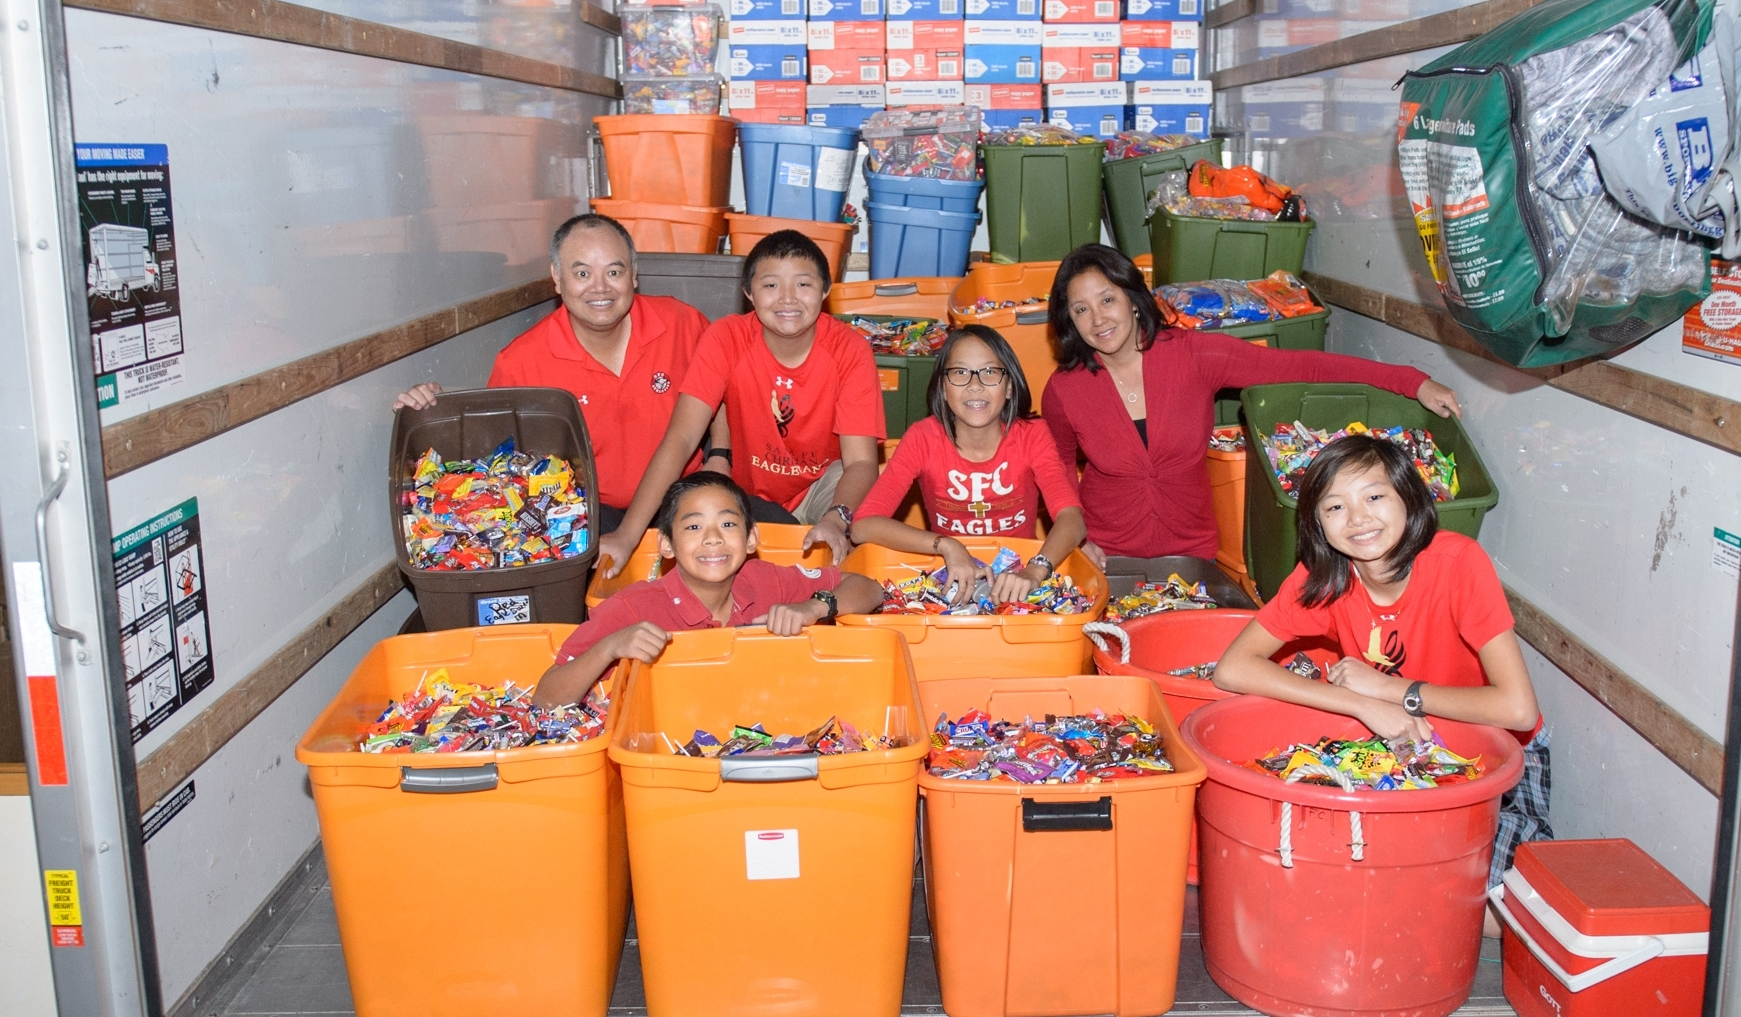 Dr. Chan rents a U-Haul truck each year to take the thousands of pounds of collected candy up to Operation Rescue in Los Angeles.